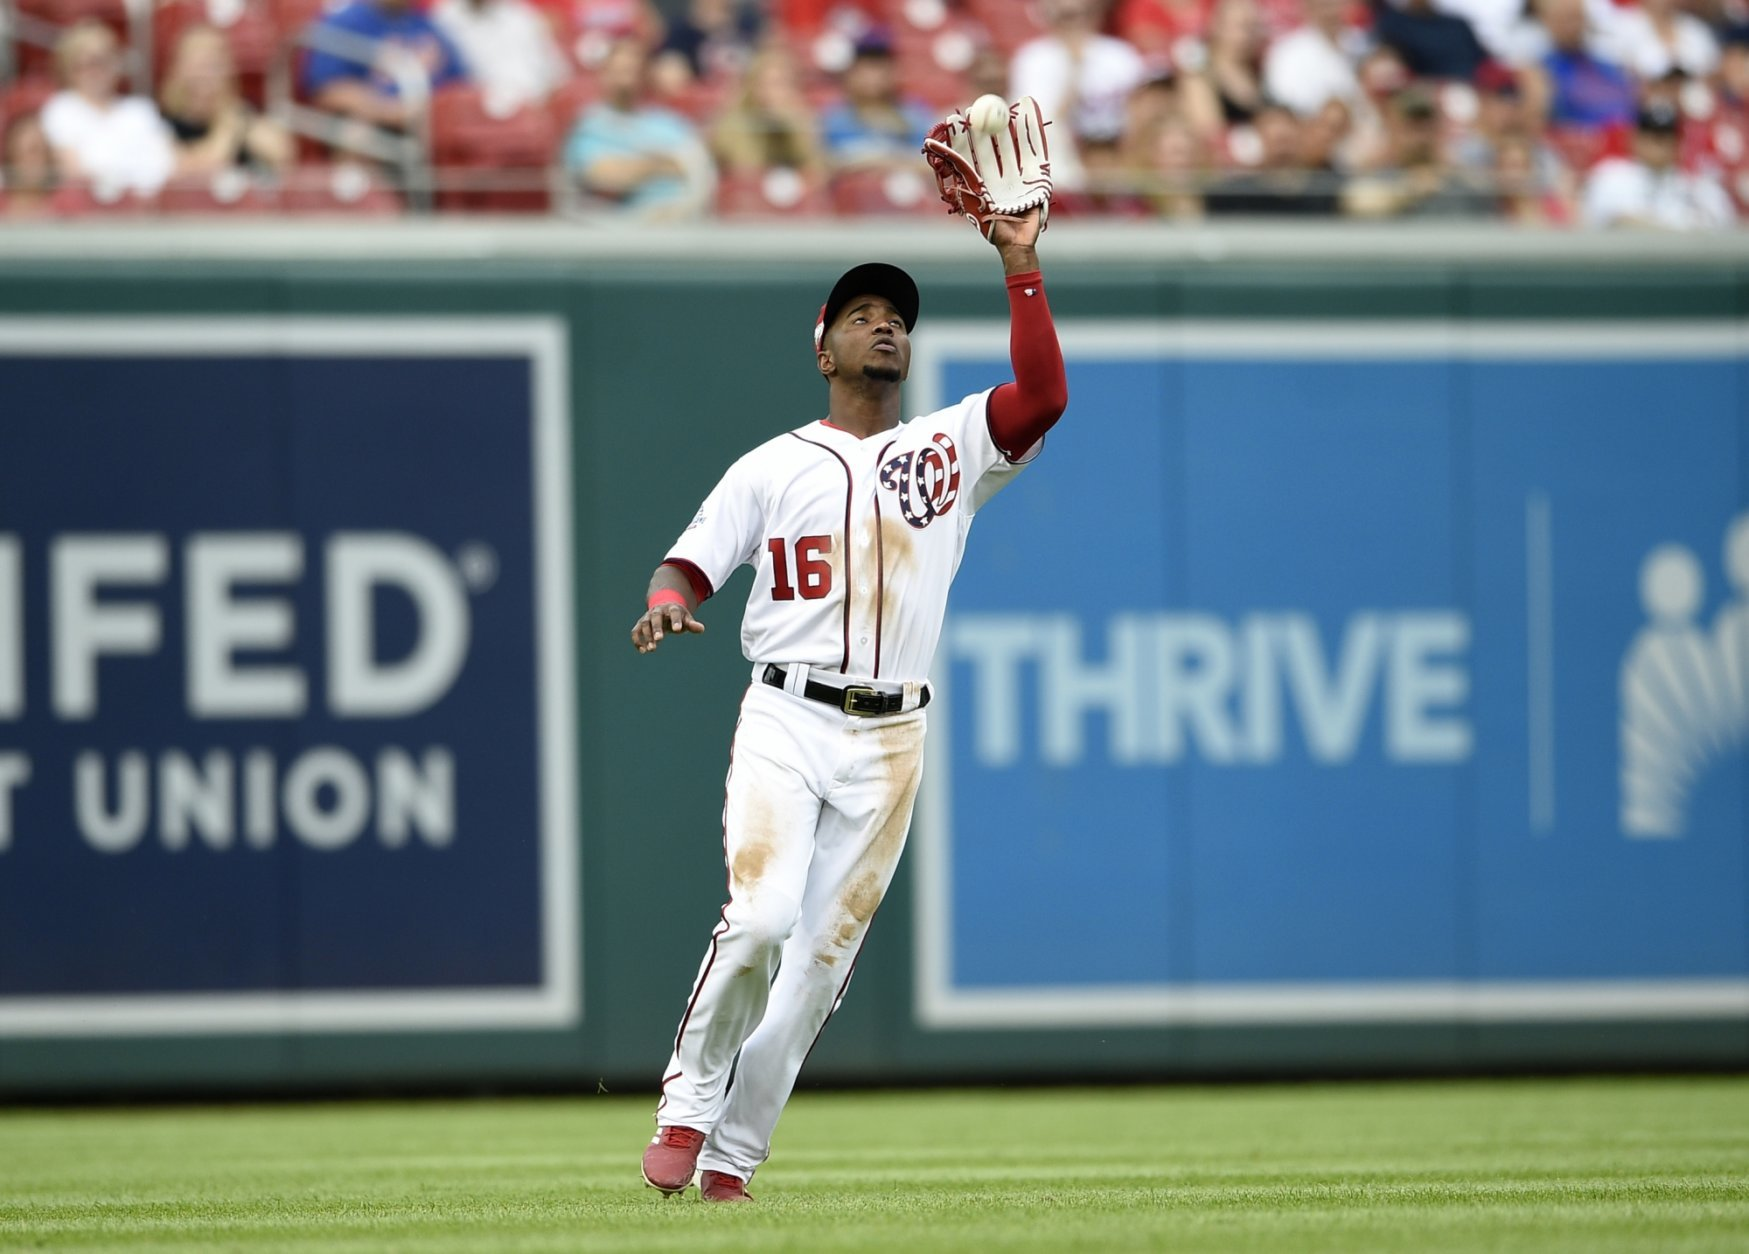 Washington Nationals left fielder Victor Robles makes a catch on a fly ball by New York Mets' Jay Bruce for the out during the fourth inning of a baseball game, Saturday, Sept. 22, 2018, in Washington. (AP Photo/Nick Wass)